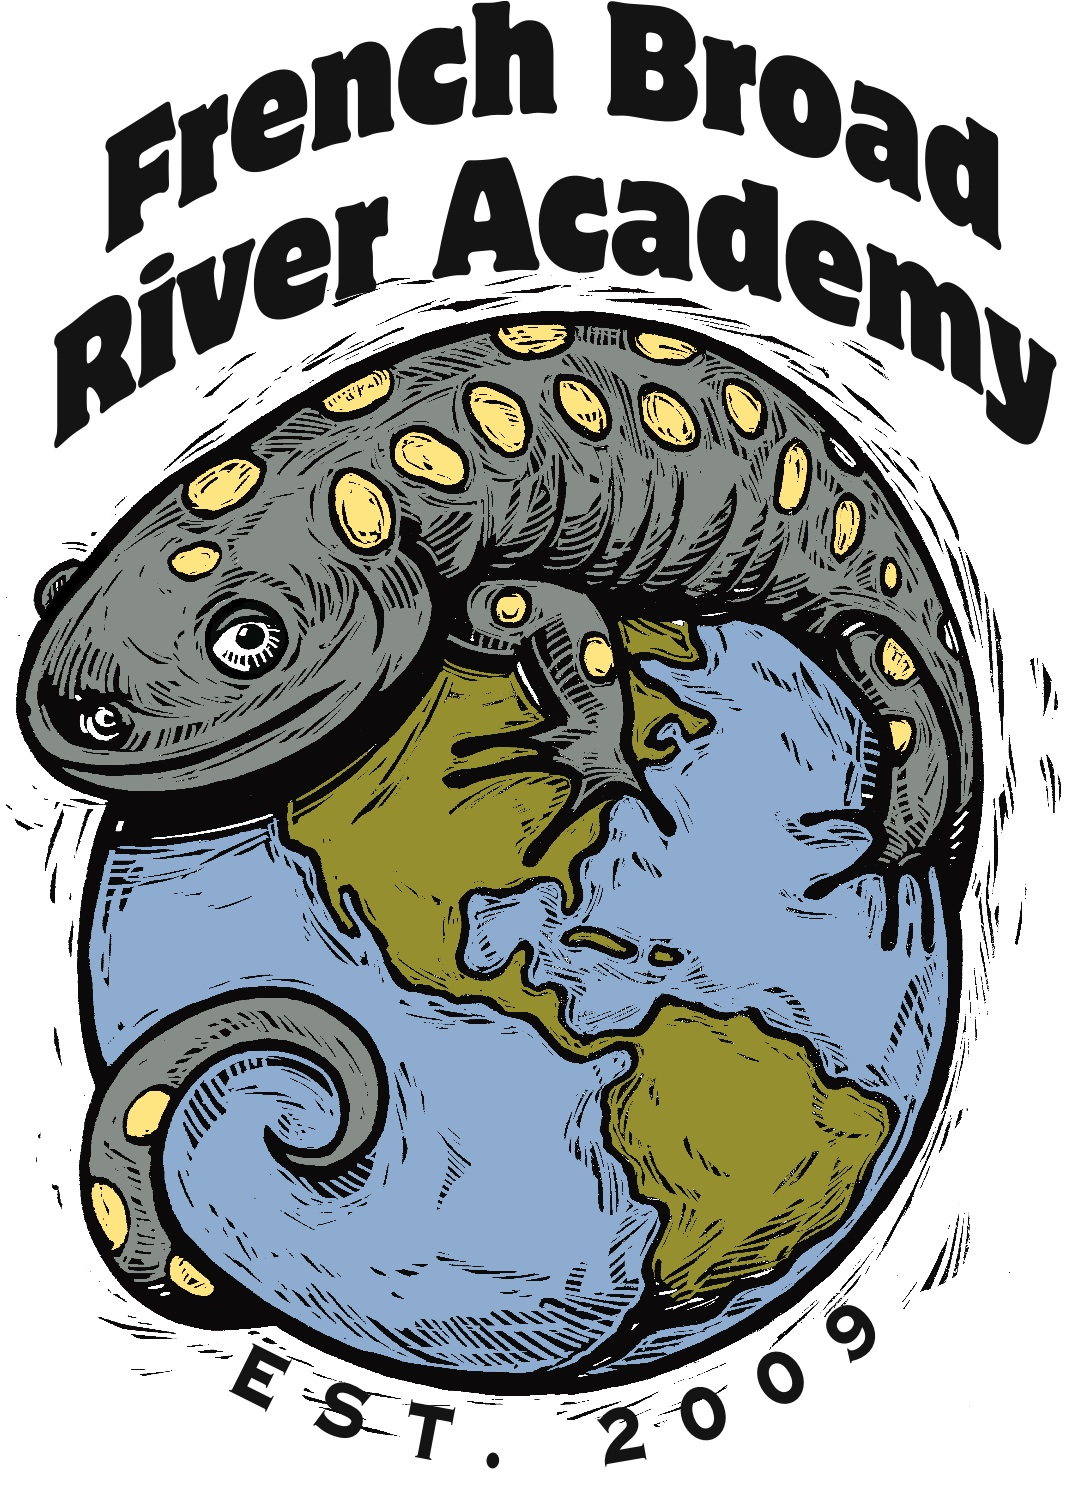 Boys Campus - French Broad River Academy